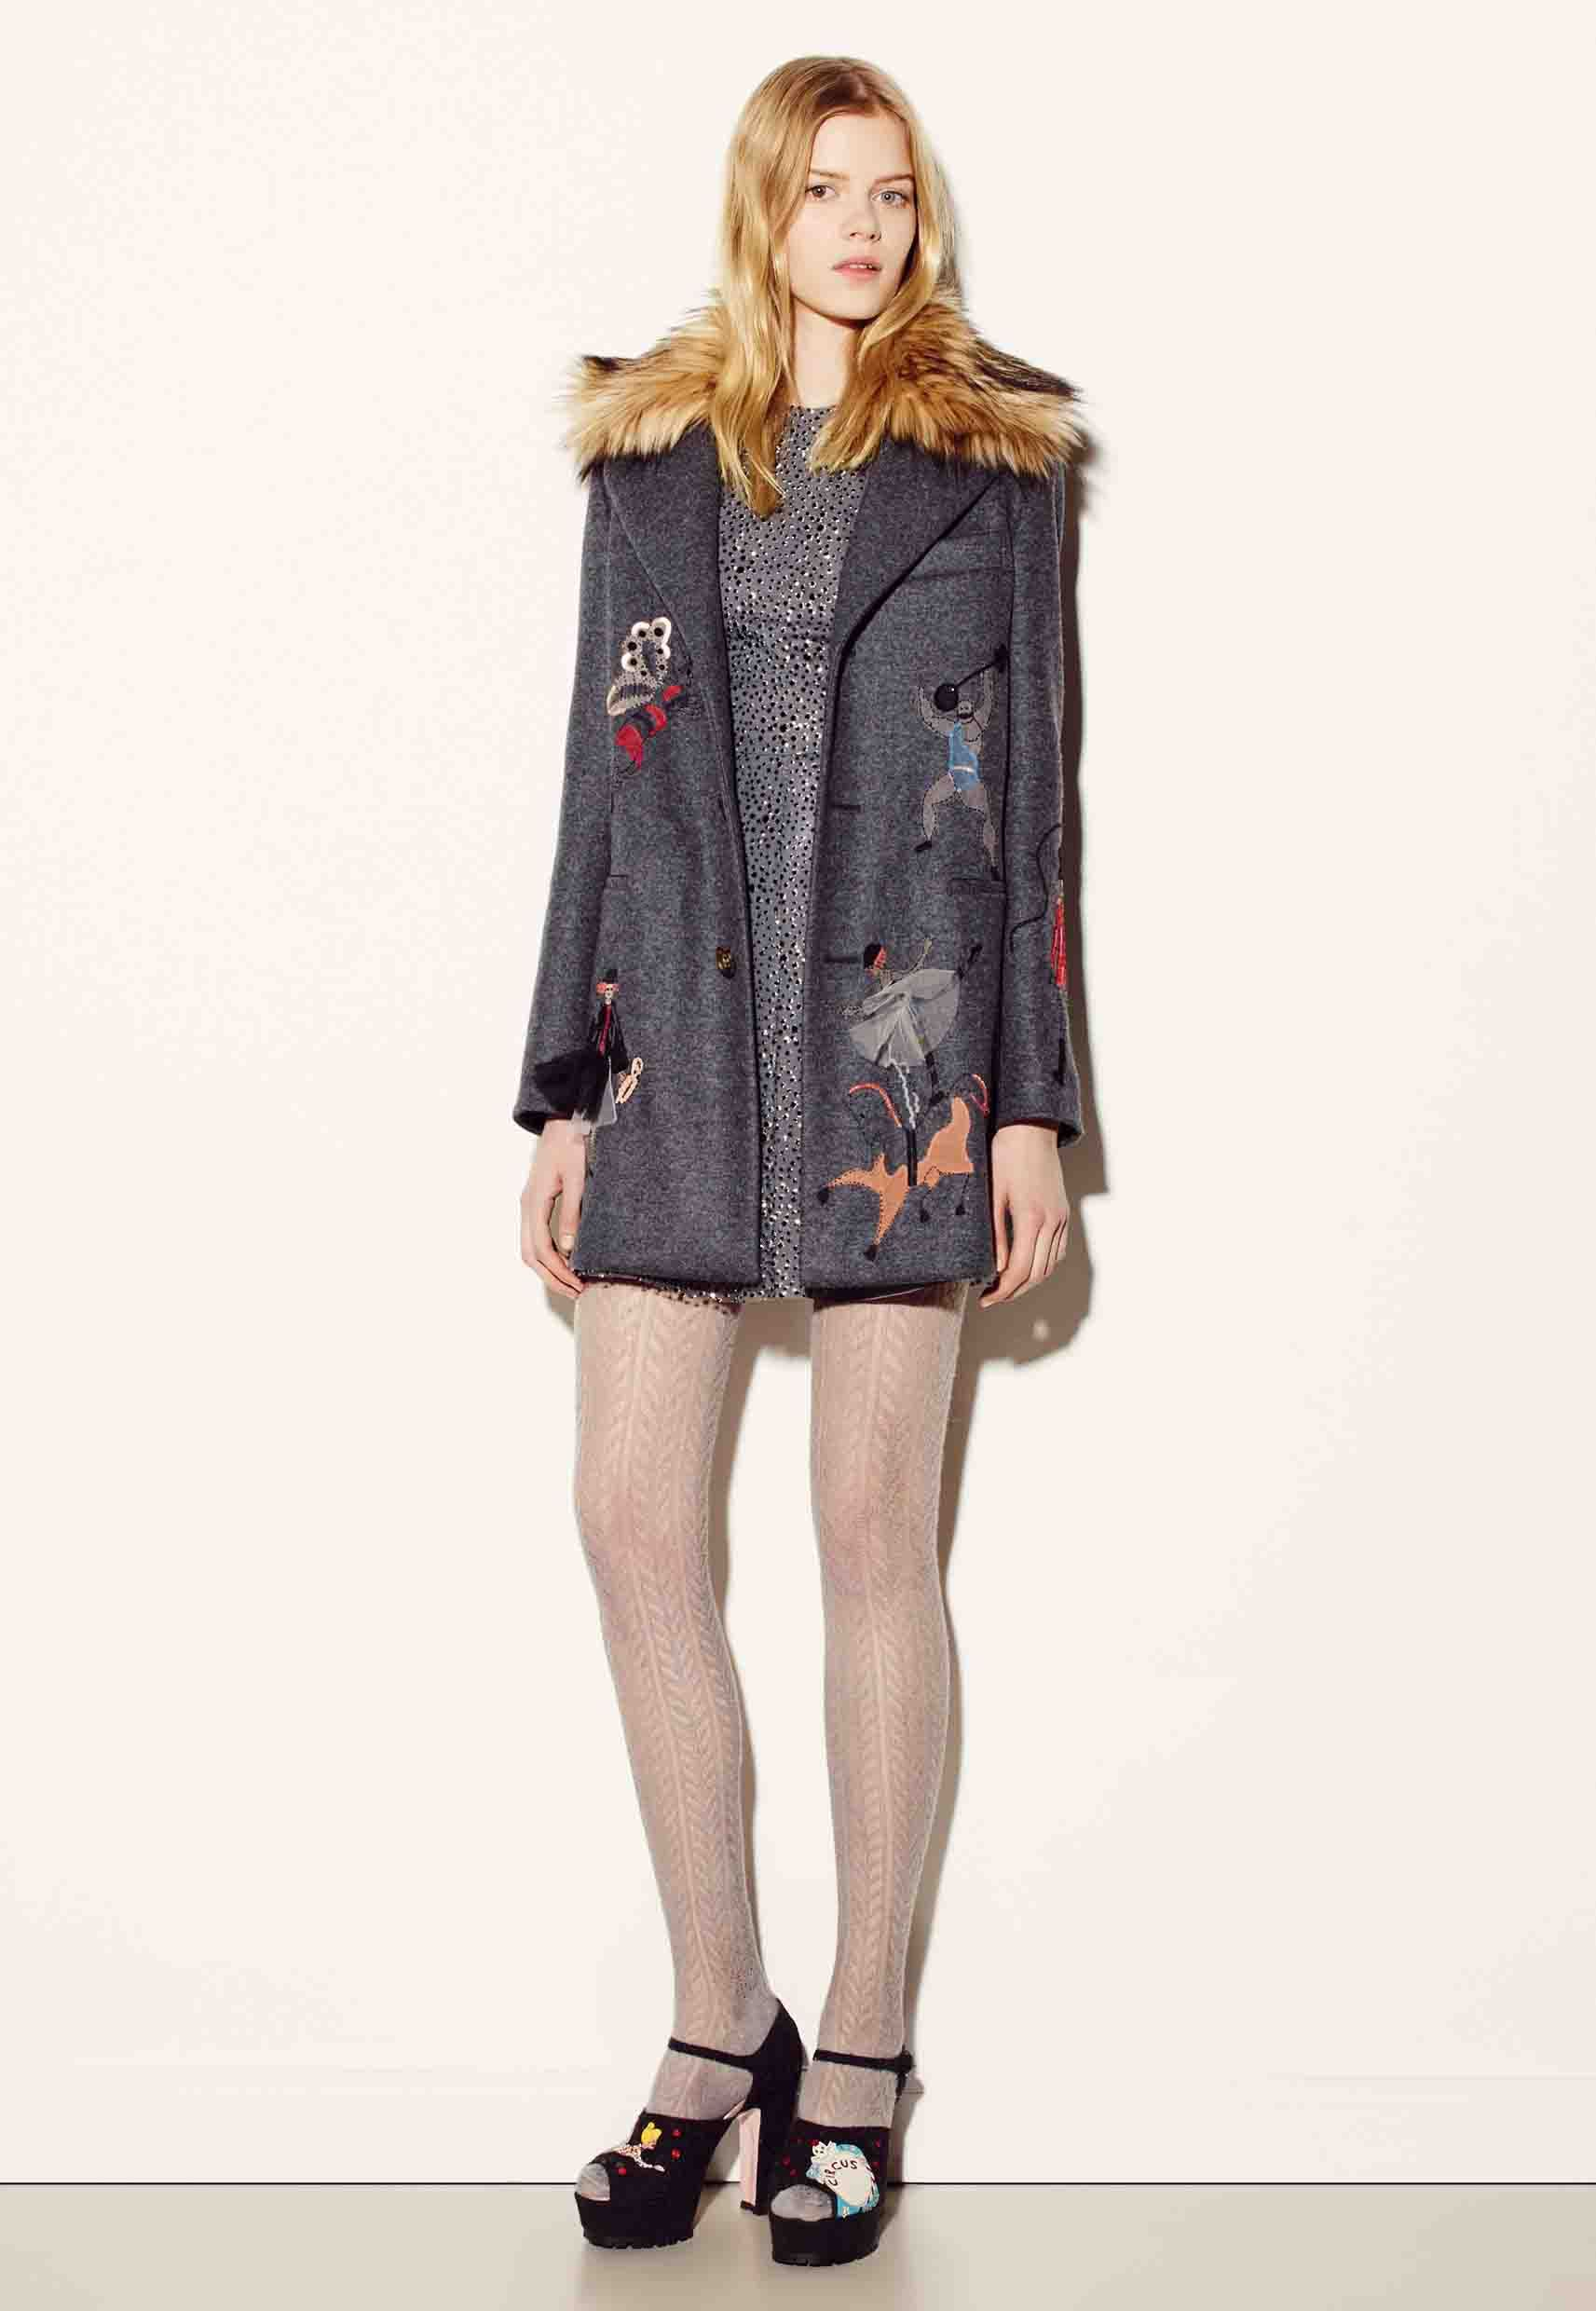 Circus embroidery! On http://www.redvalentino.com/it/e-store